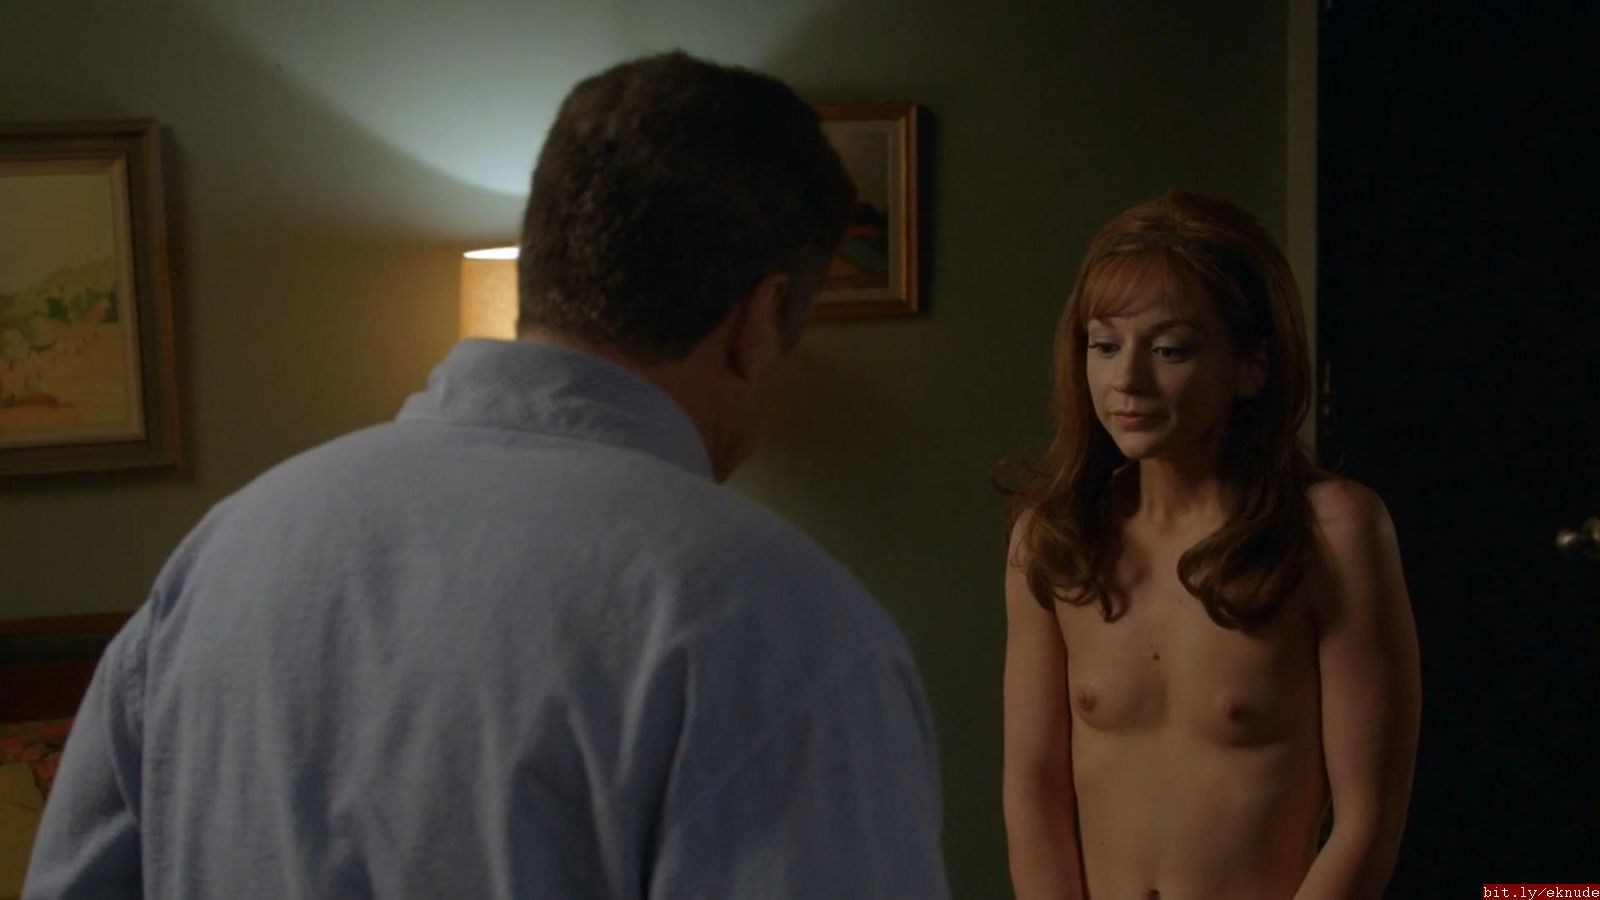 Mara Lane Nude  The Brink - 2015 s01e01 recommend